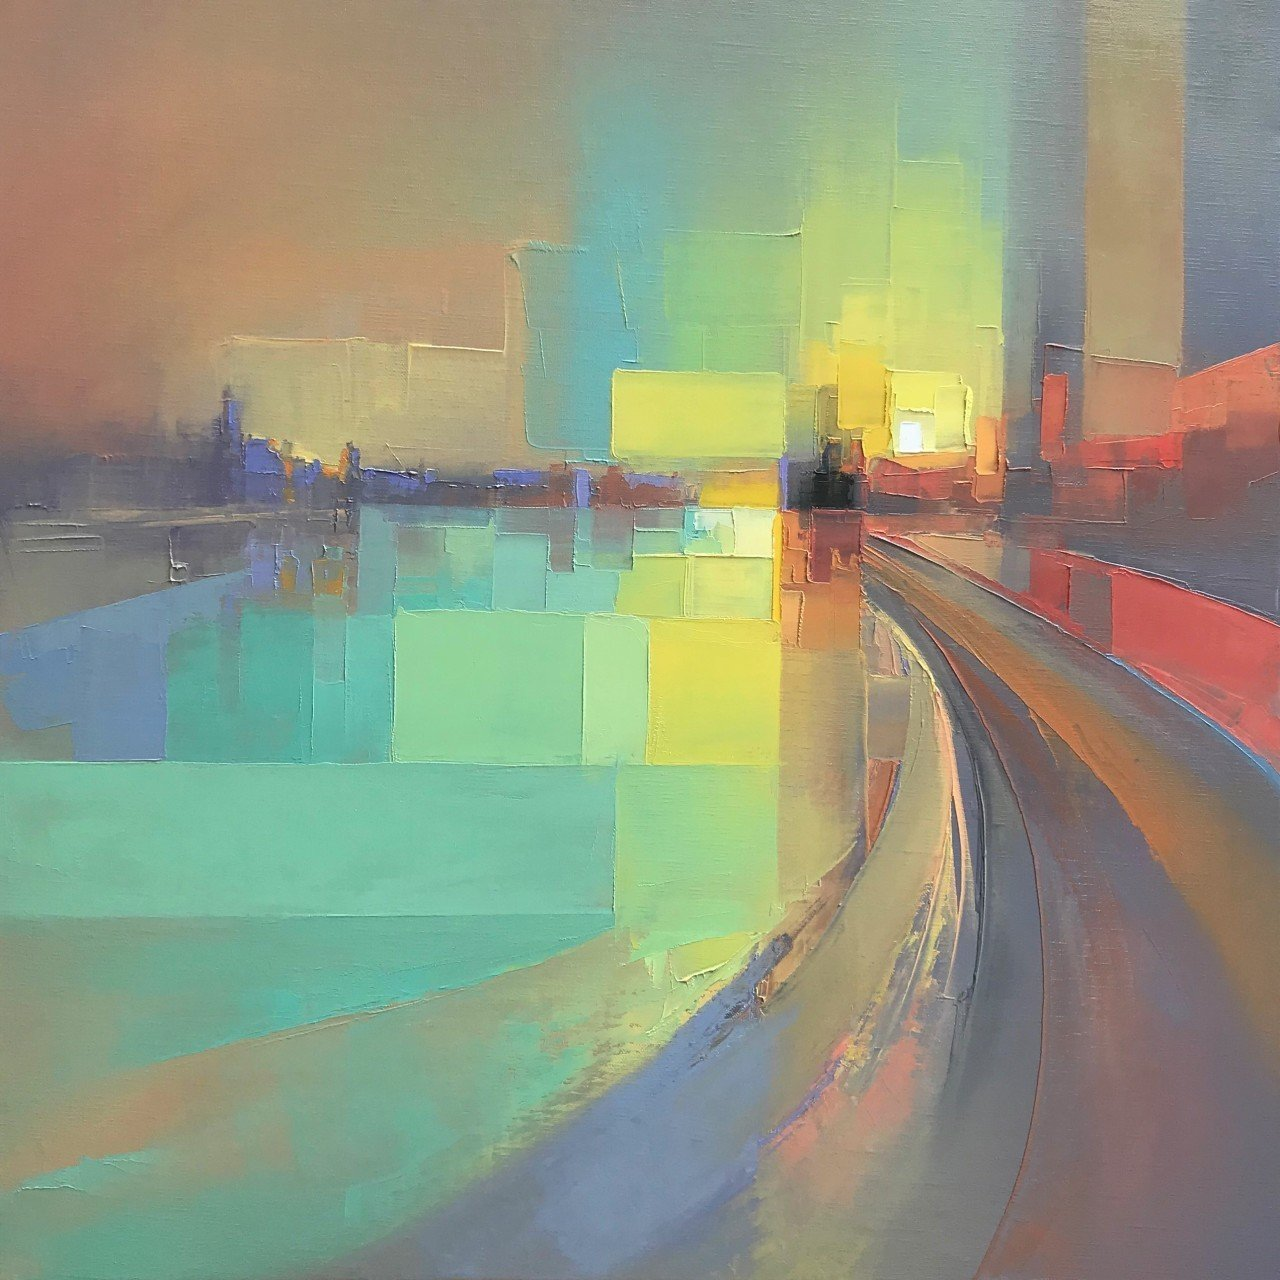 Landscapes by Jason Anderson Blend Precise Pixelation and Hazy Abstraction